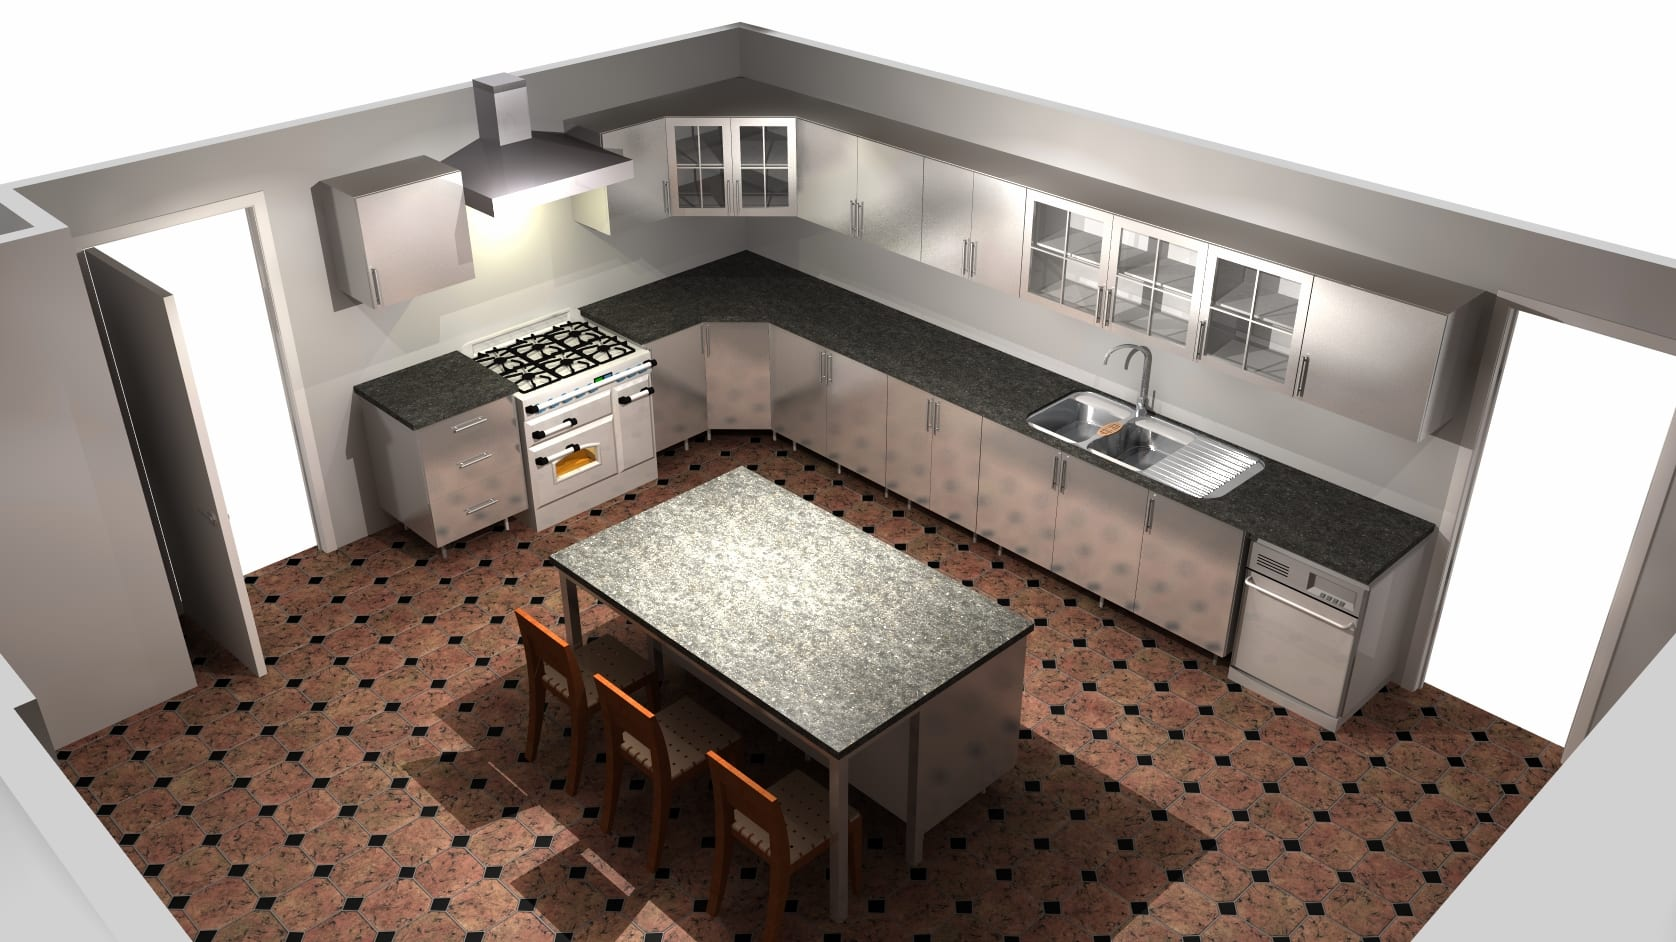 Do 3d Kitchen Design In 2020 By Sheronrex